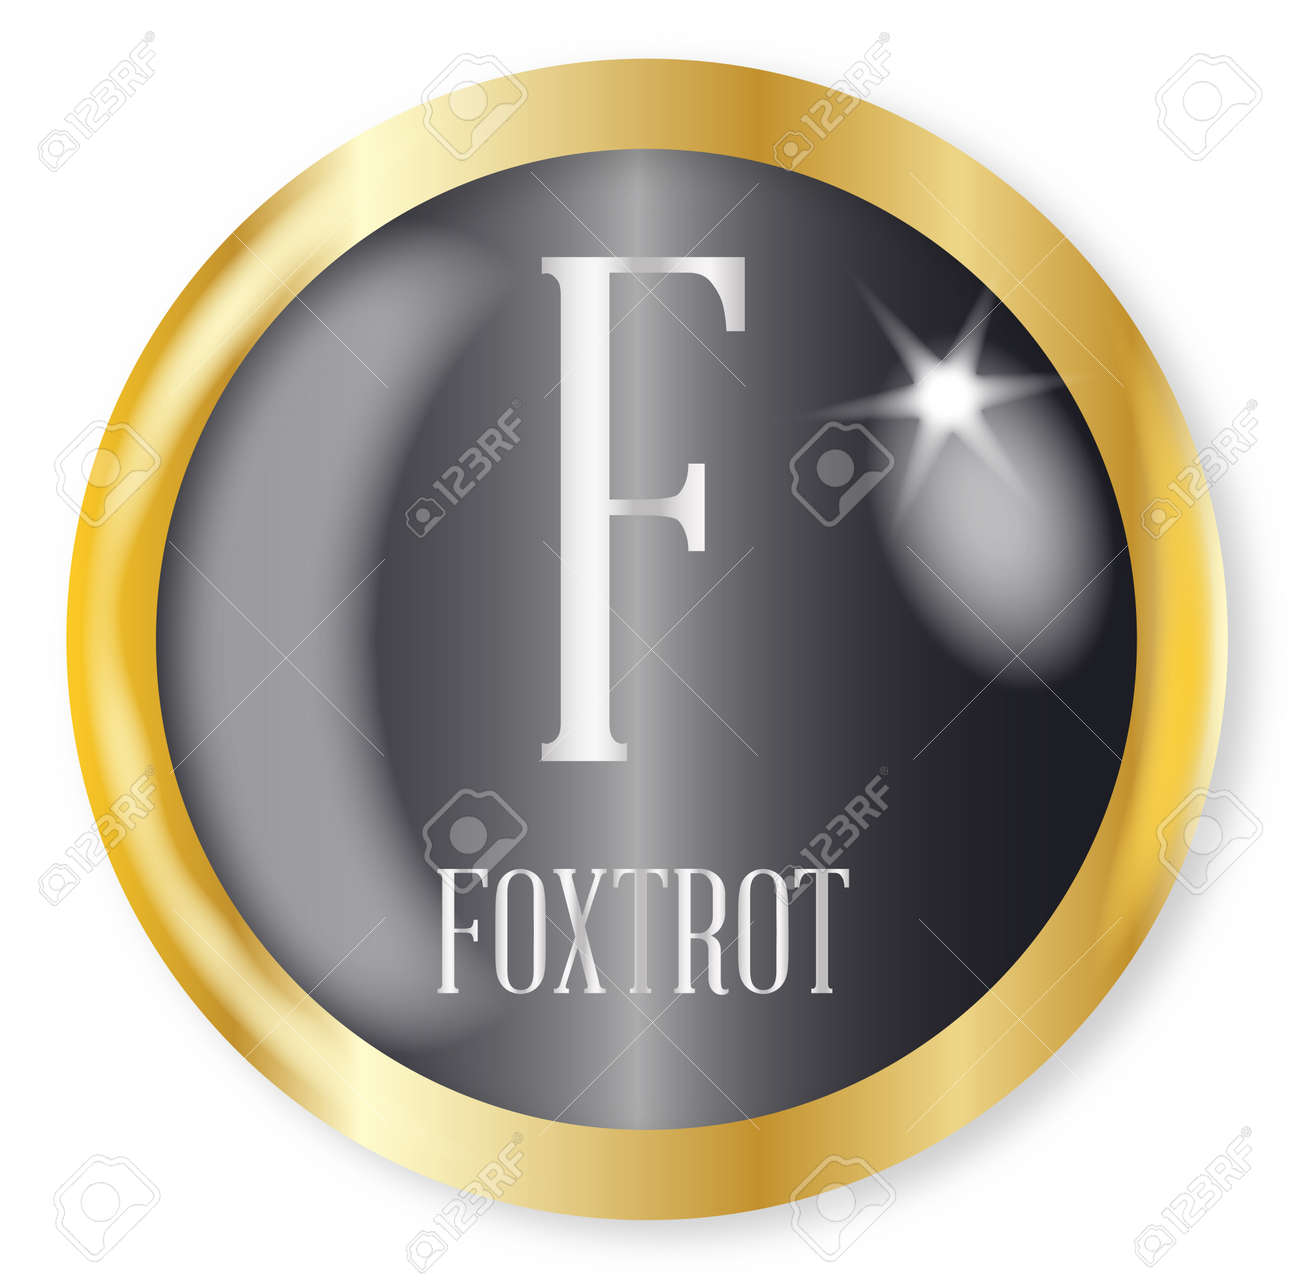 F For Foxtrot Button From The Nato Phonetic Alphabet With A Gold Royalty Free Cliparts Vectors And Stock Illustration Image 76824913